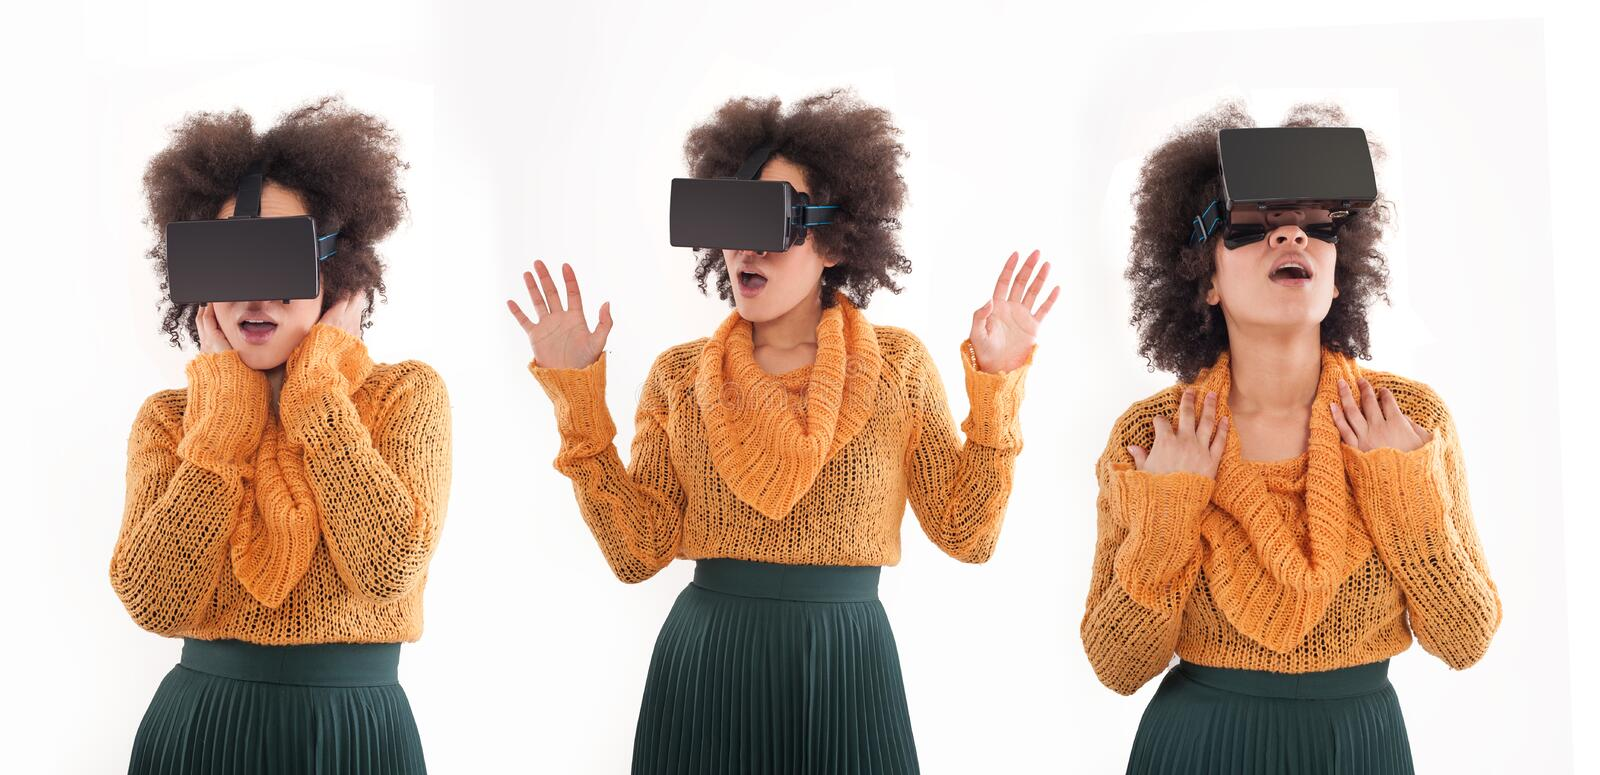 Montage with young woman having fun with virtual reality glasses royalty free stock image